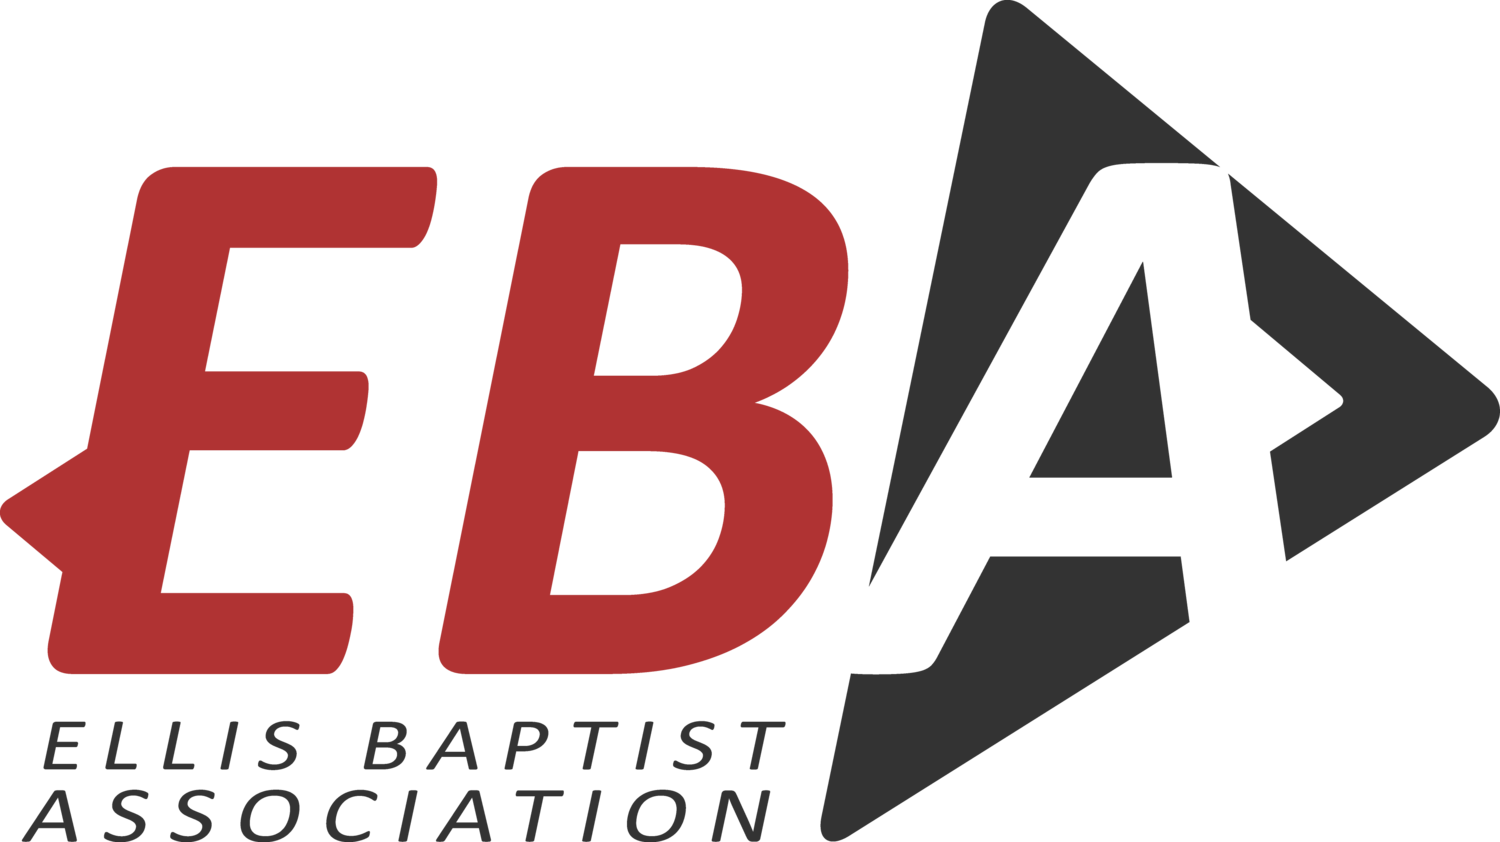 Ellis Baptist Association